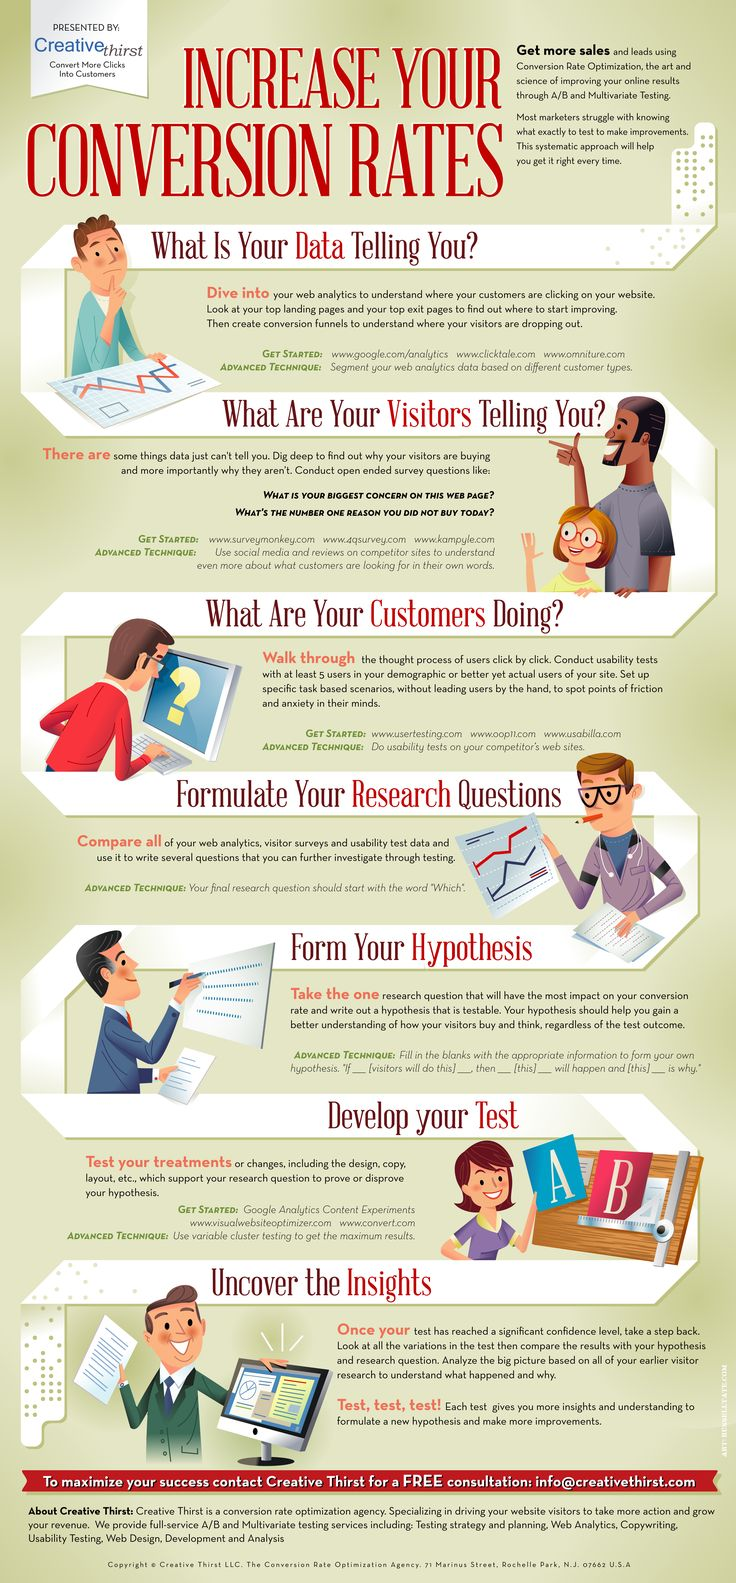 Infographic chart explaining the steps involved to increase sales and leads using CRO